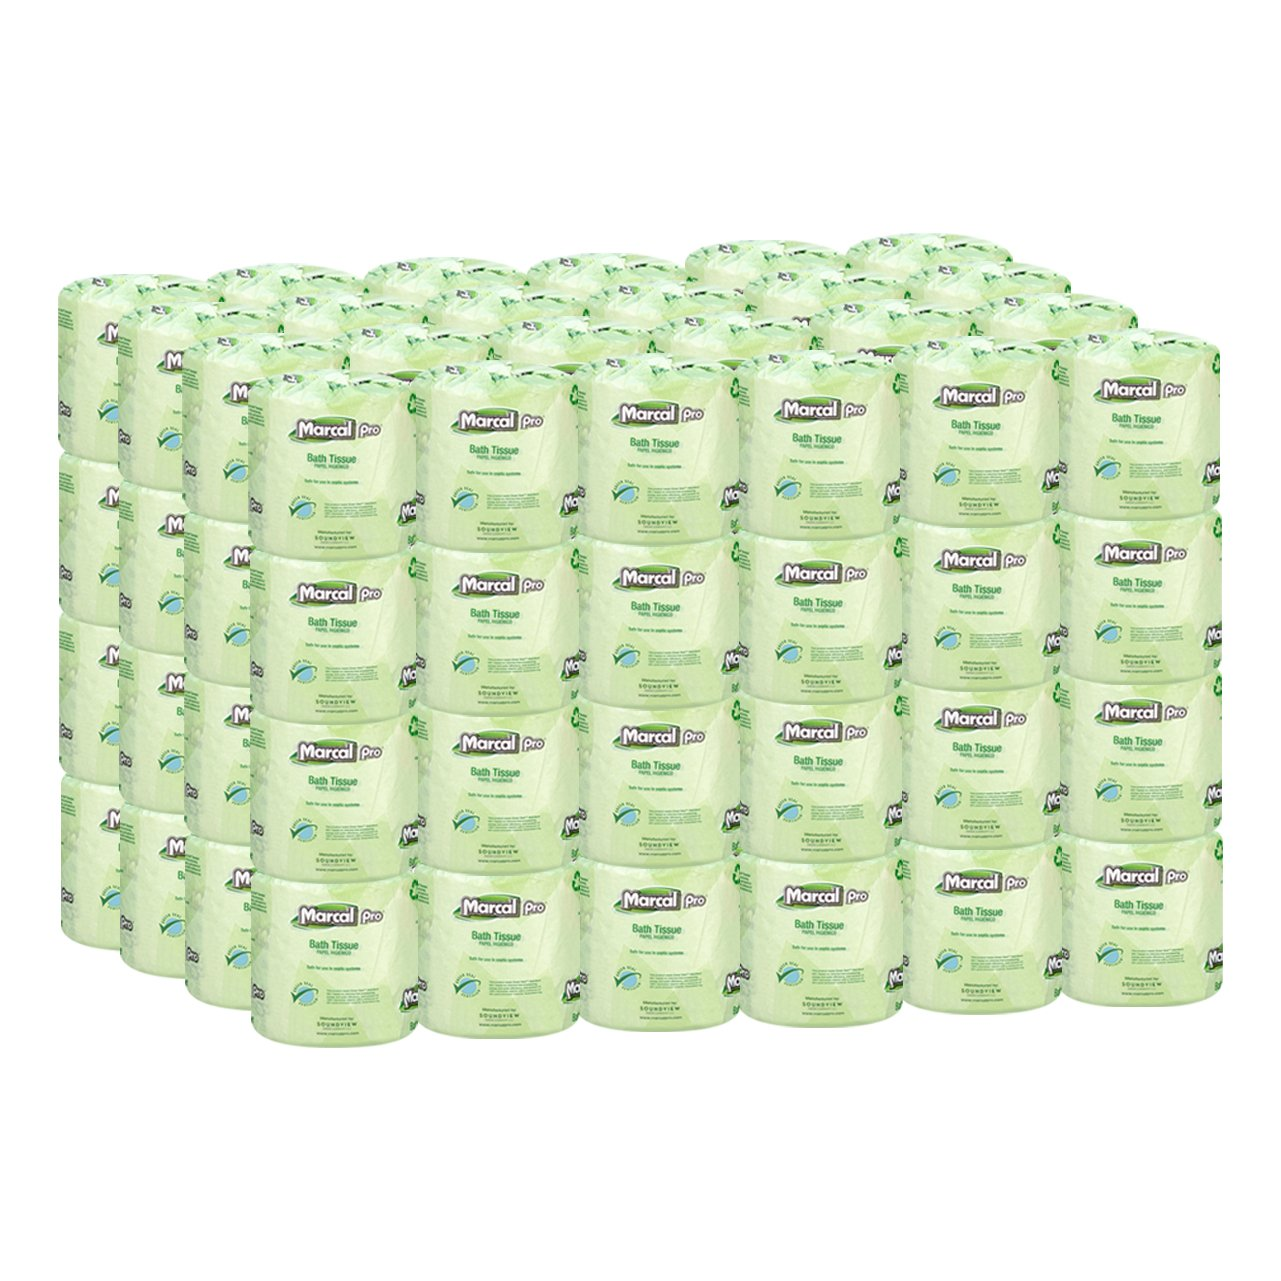 Marcal Pro Toilet Paper, 100% Recycled - 2-Ply, White, 500 Soft & Absorbent Sheets per Roll, 96 Rolls per Case - Green Seal Certified, Bulk Office Bath Tissue 05002 by Marcal (Image #1)